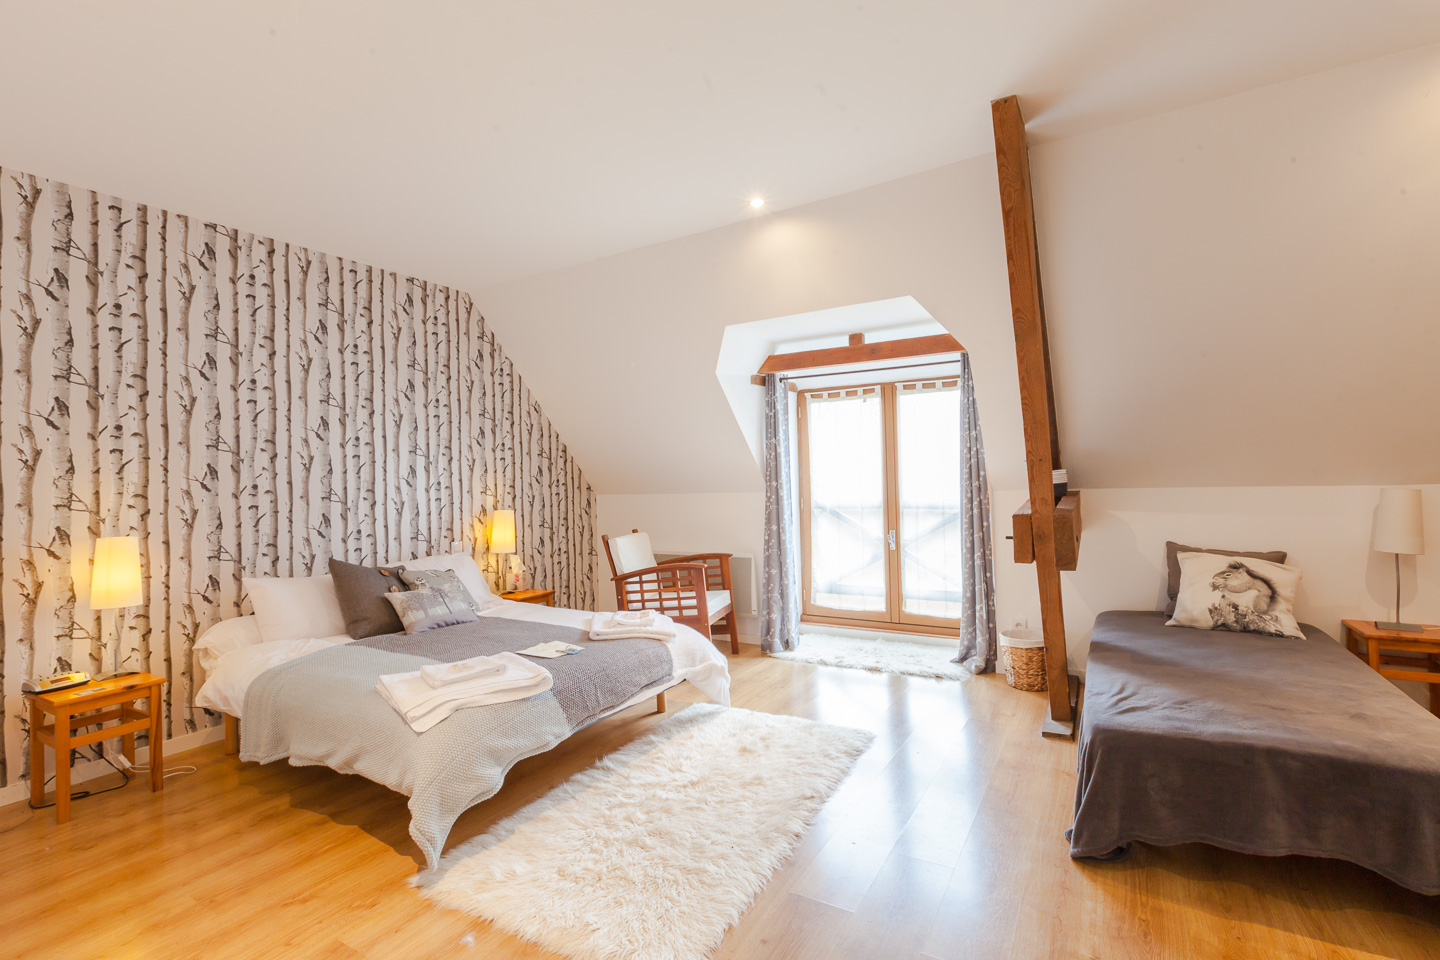 Discover the Oak tree room at the Normandy Inn Bed and Breakfast - Montbray Normandy